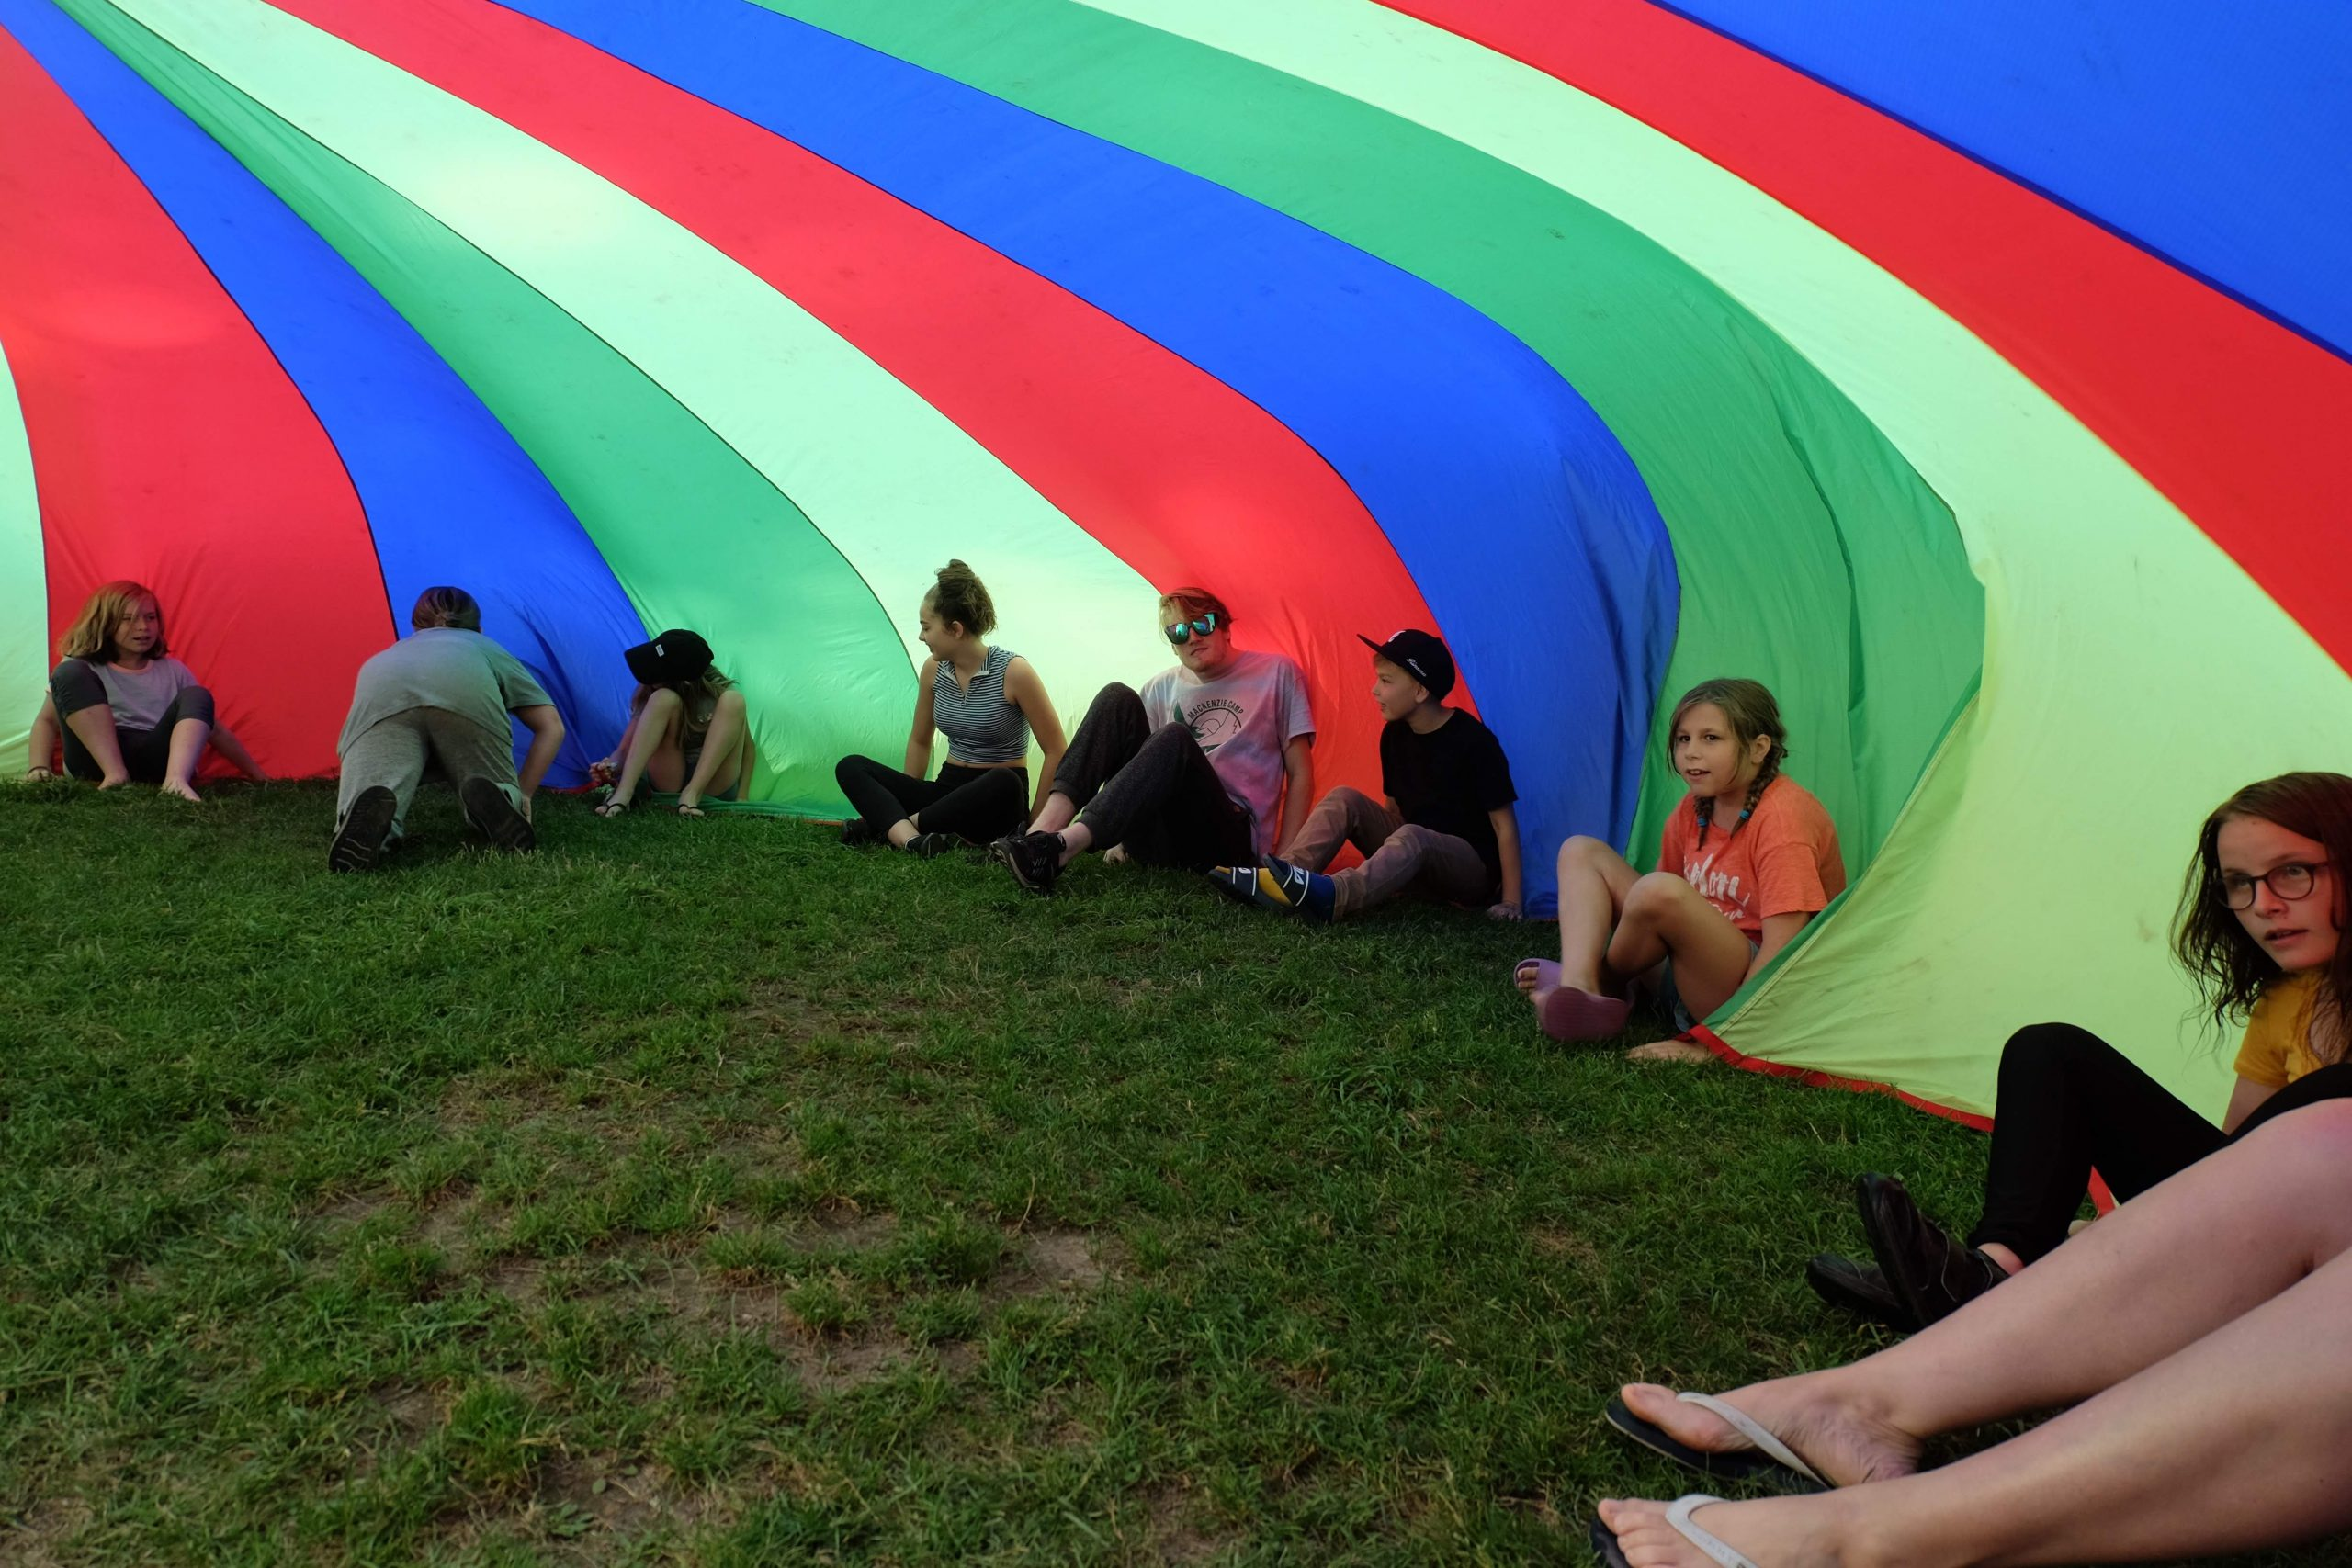 campers playing under the rainbow parachute